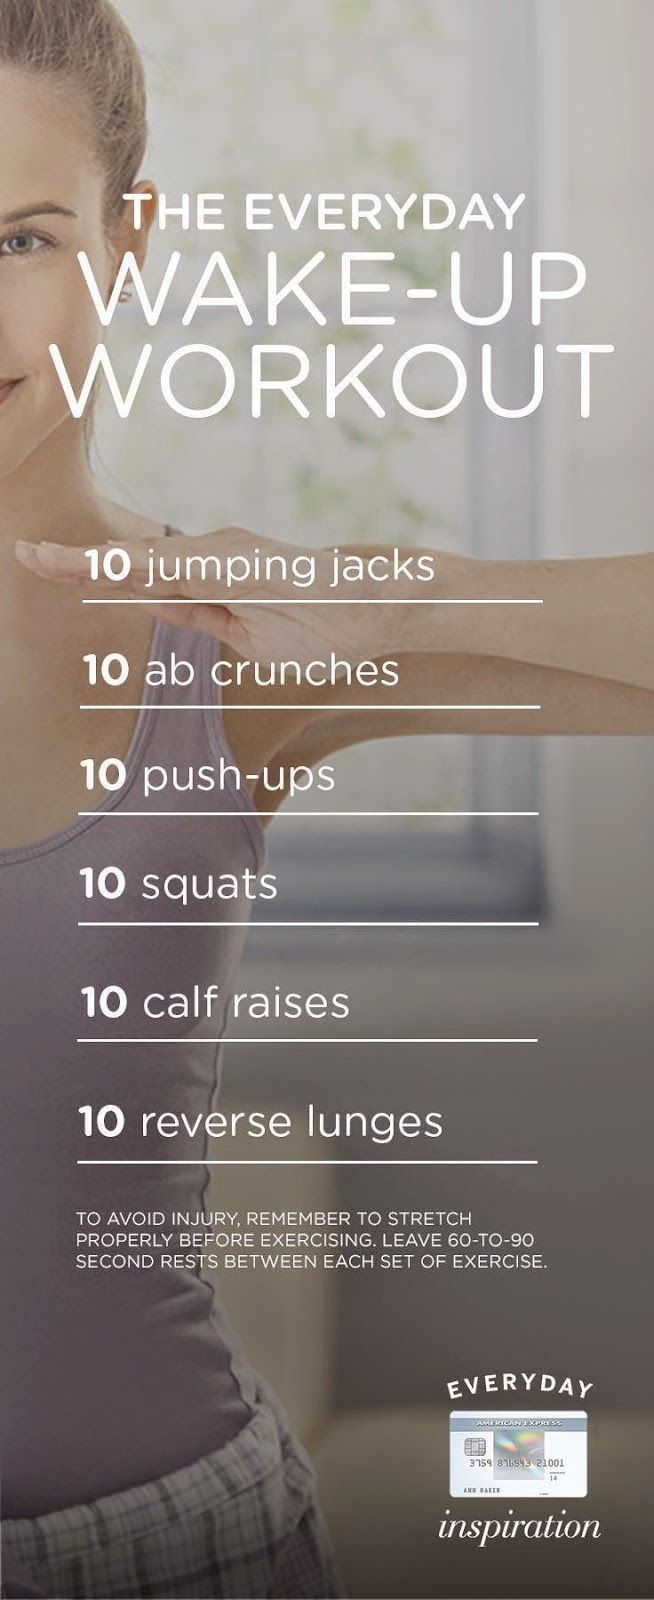 12 Weight Loss Morning Workouts To Burn Maximum Calories!